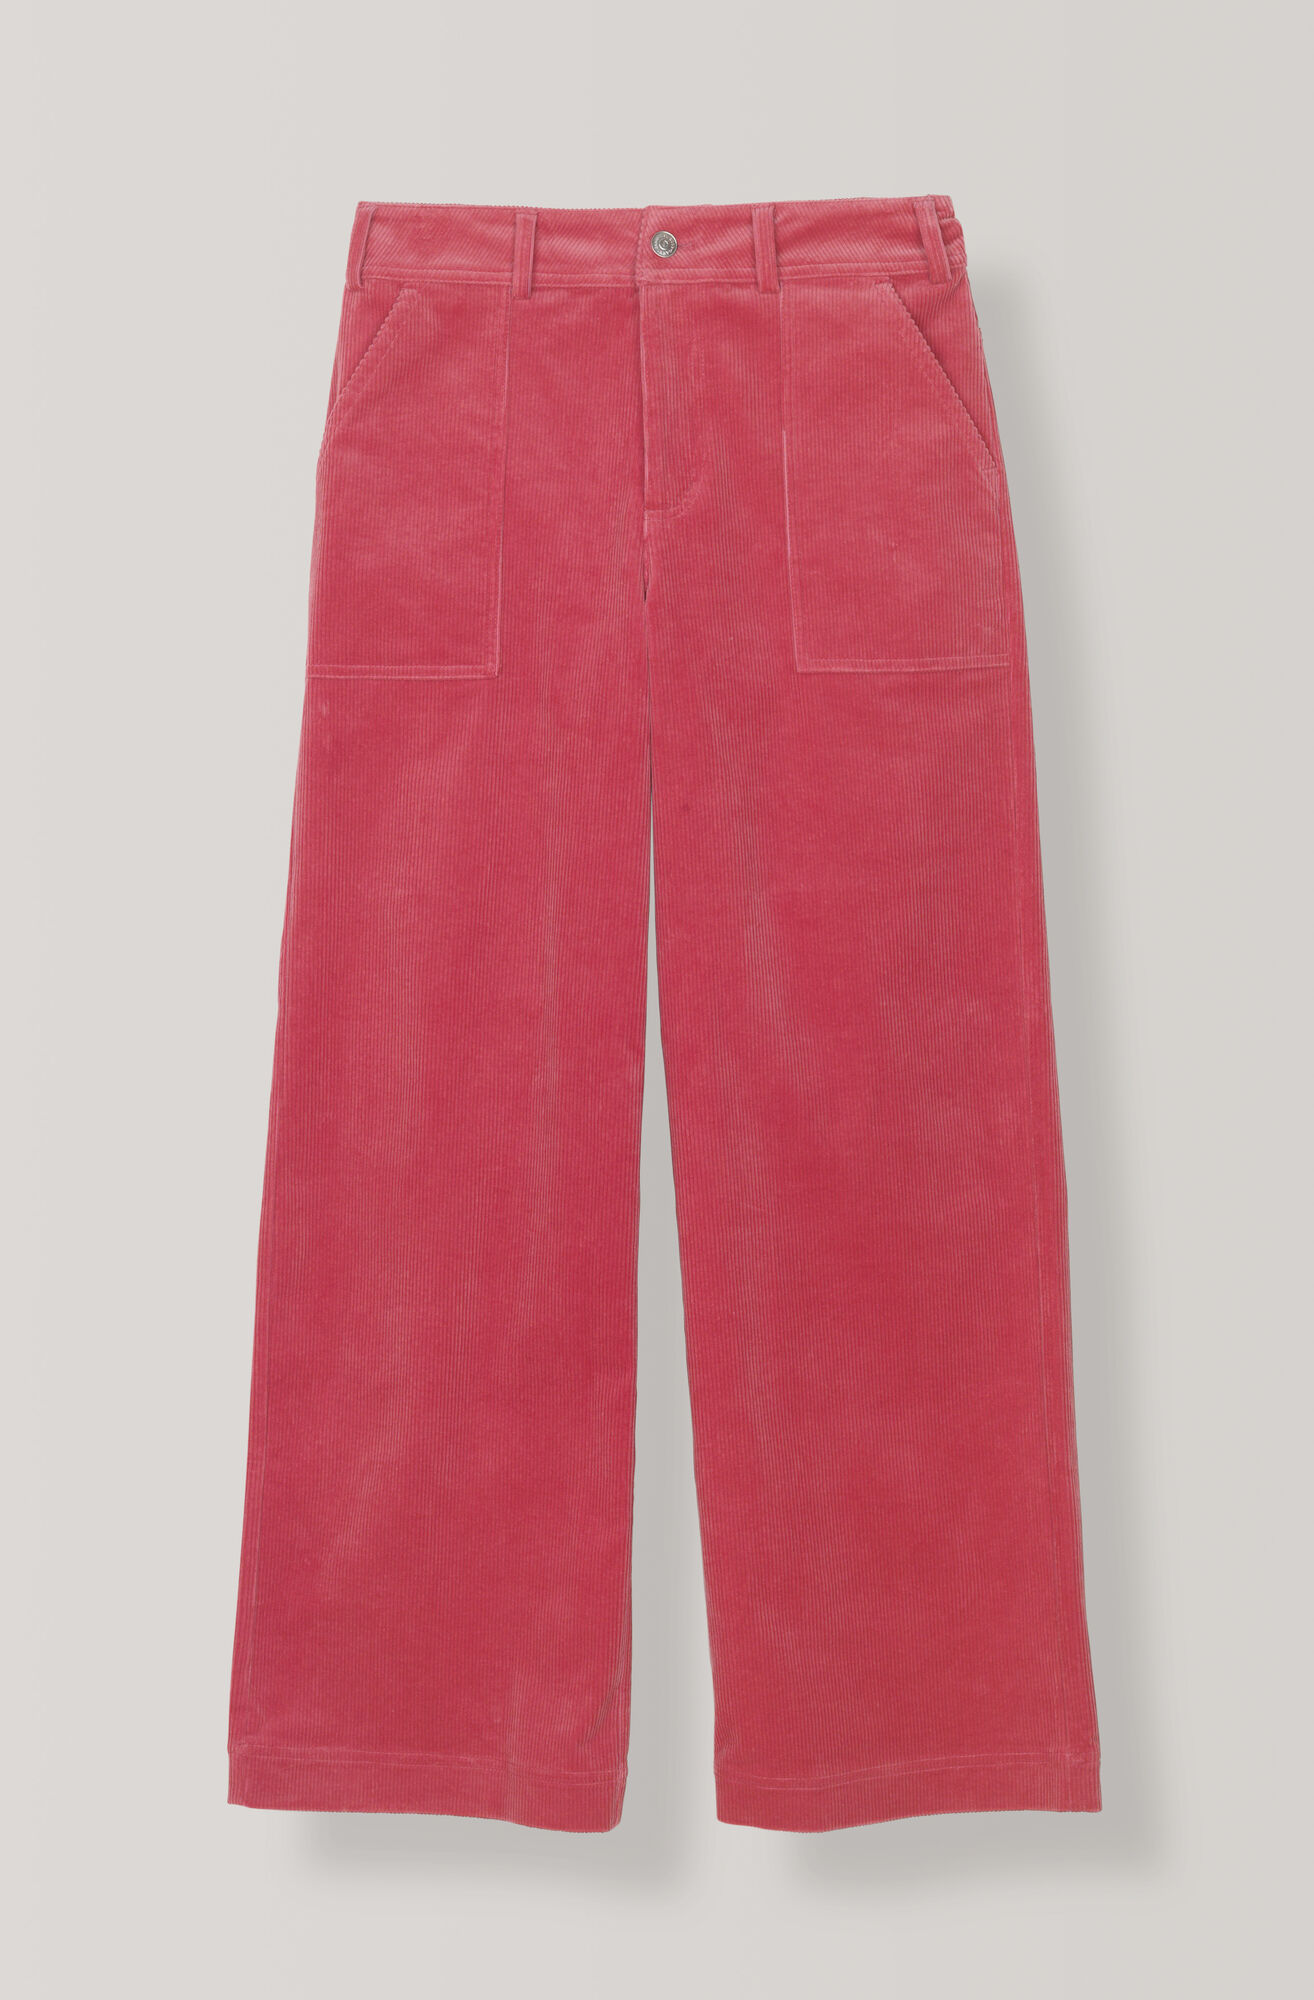 Stretch Corduroy Pants, Hot Pink, hi-res